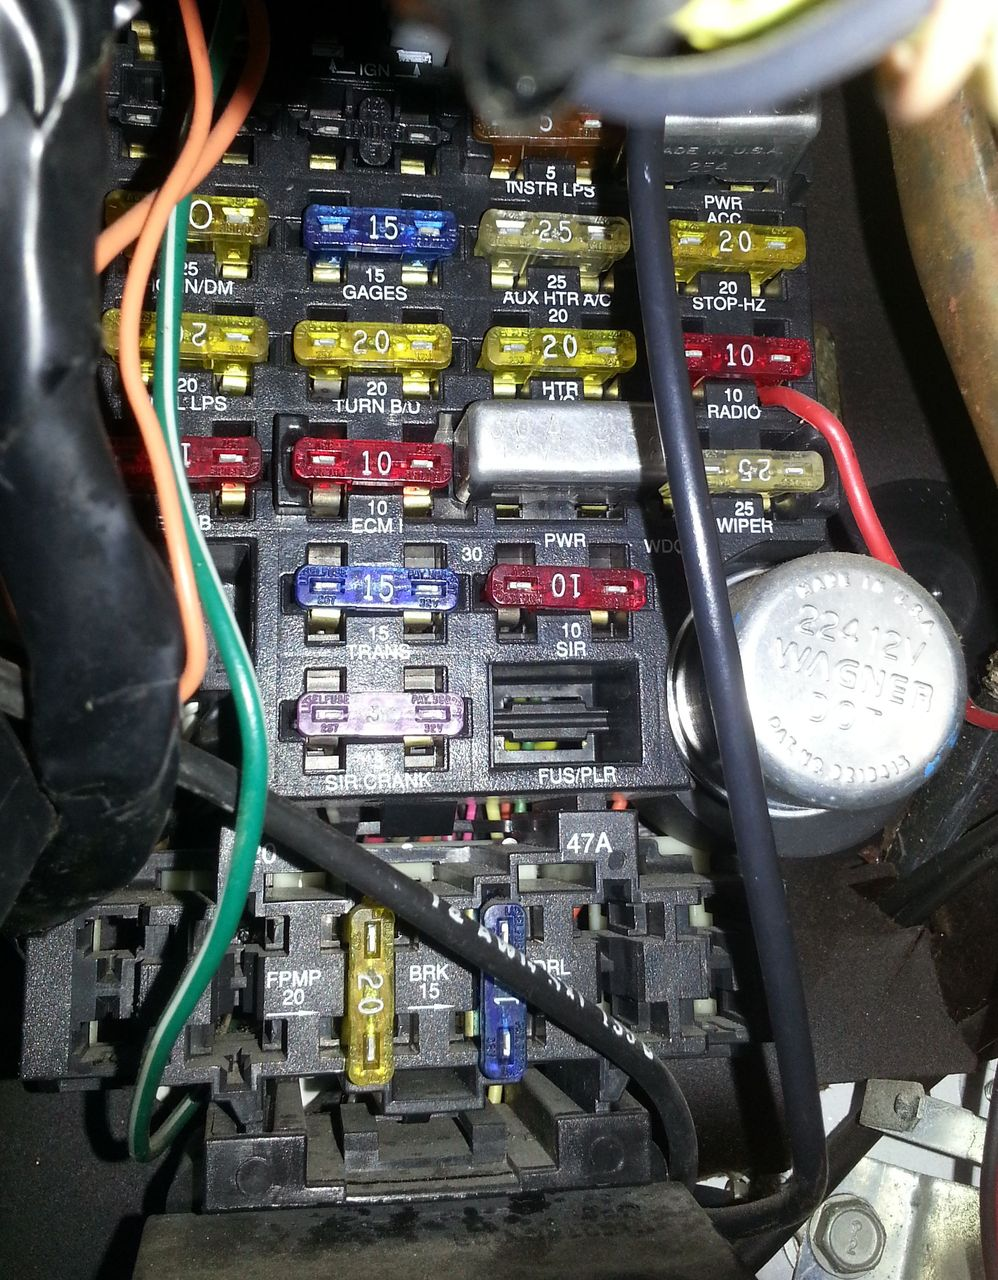 1988 Chevy Van Fuse Box - Search Wiring Diagrams on